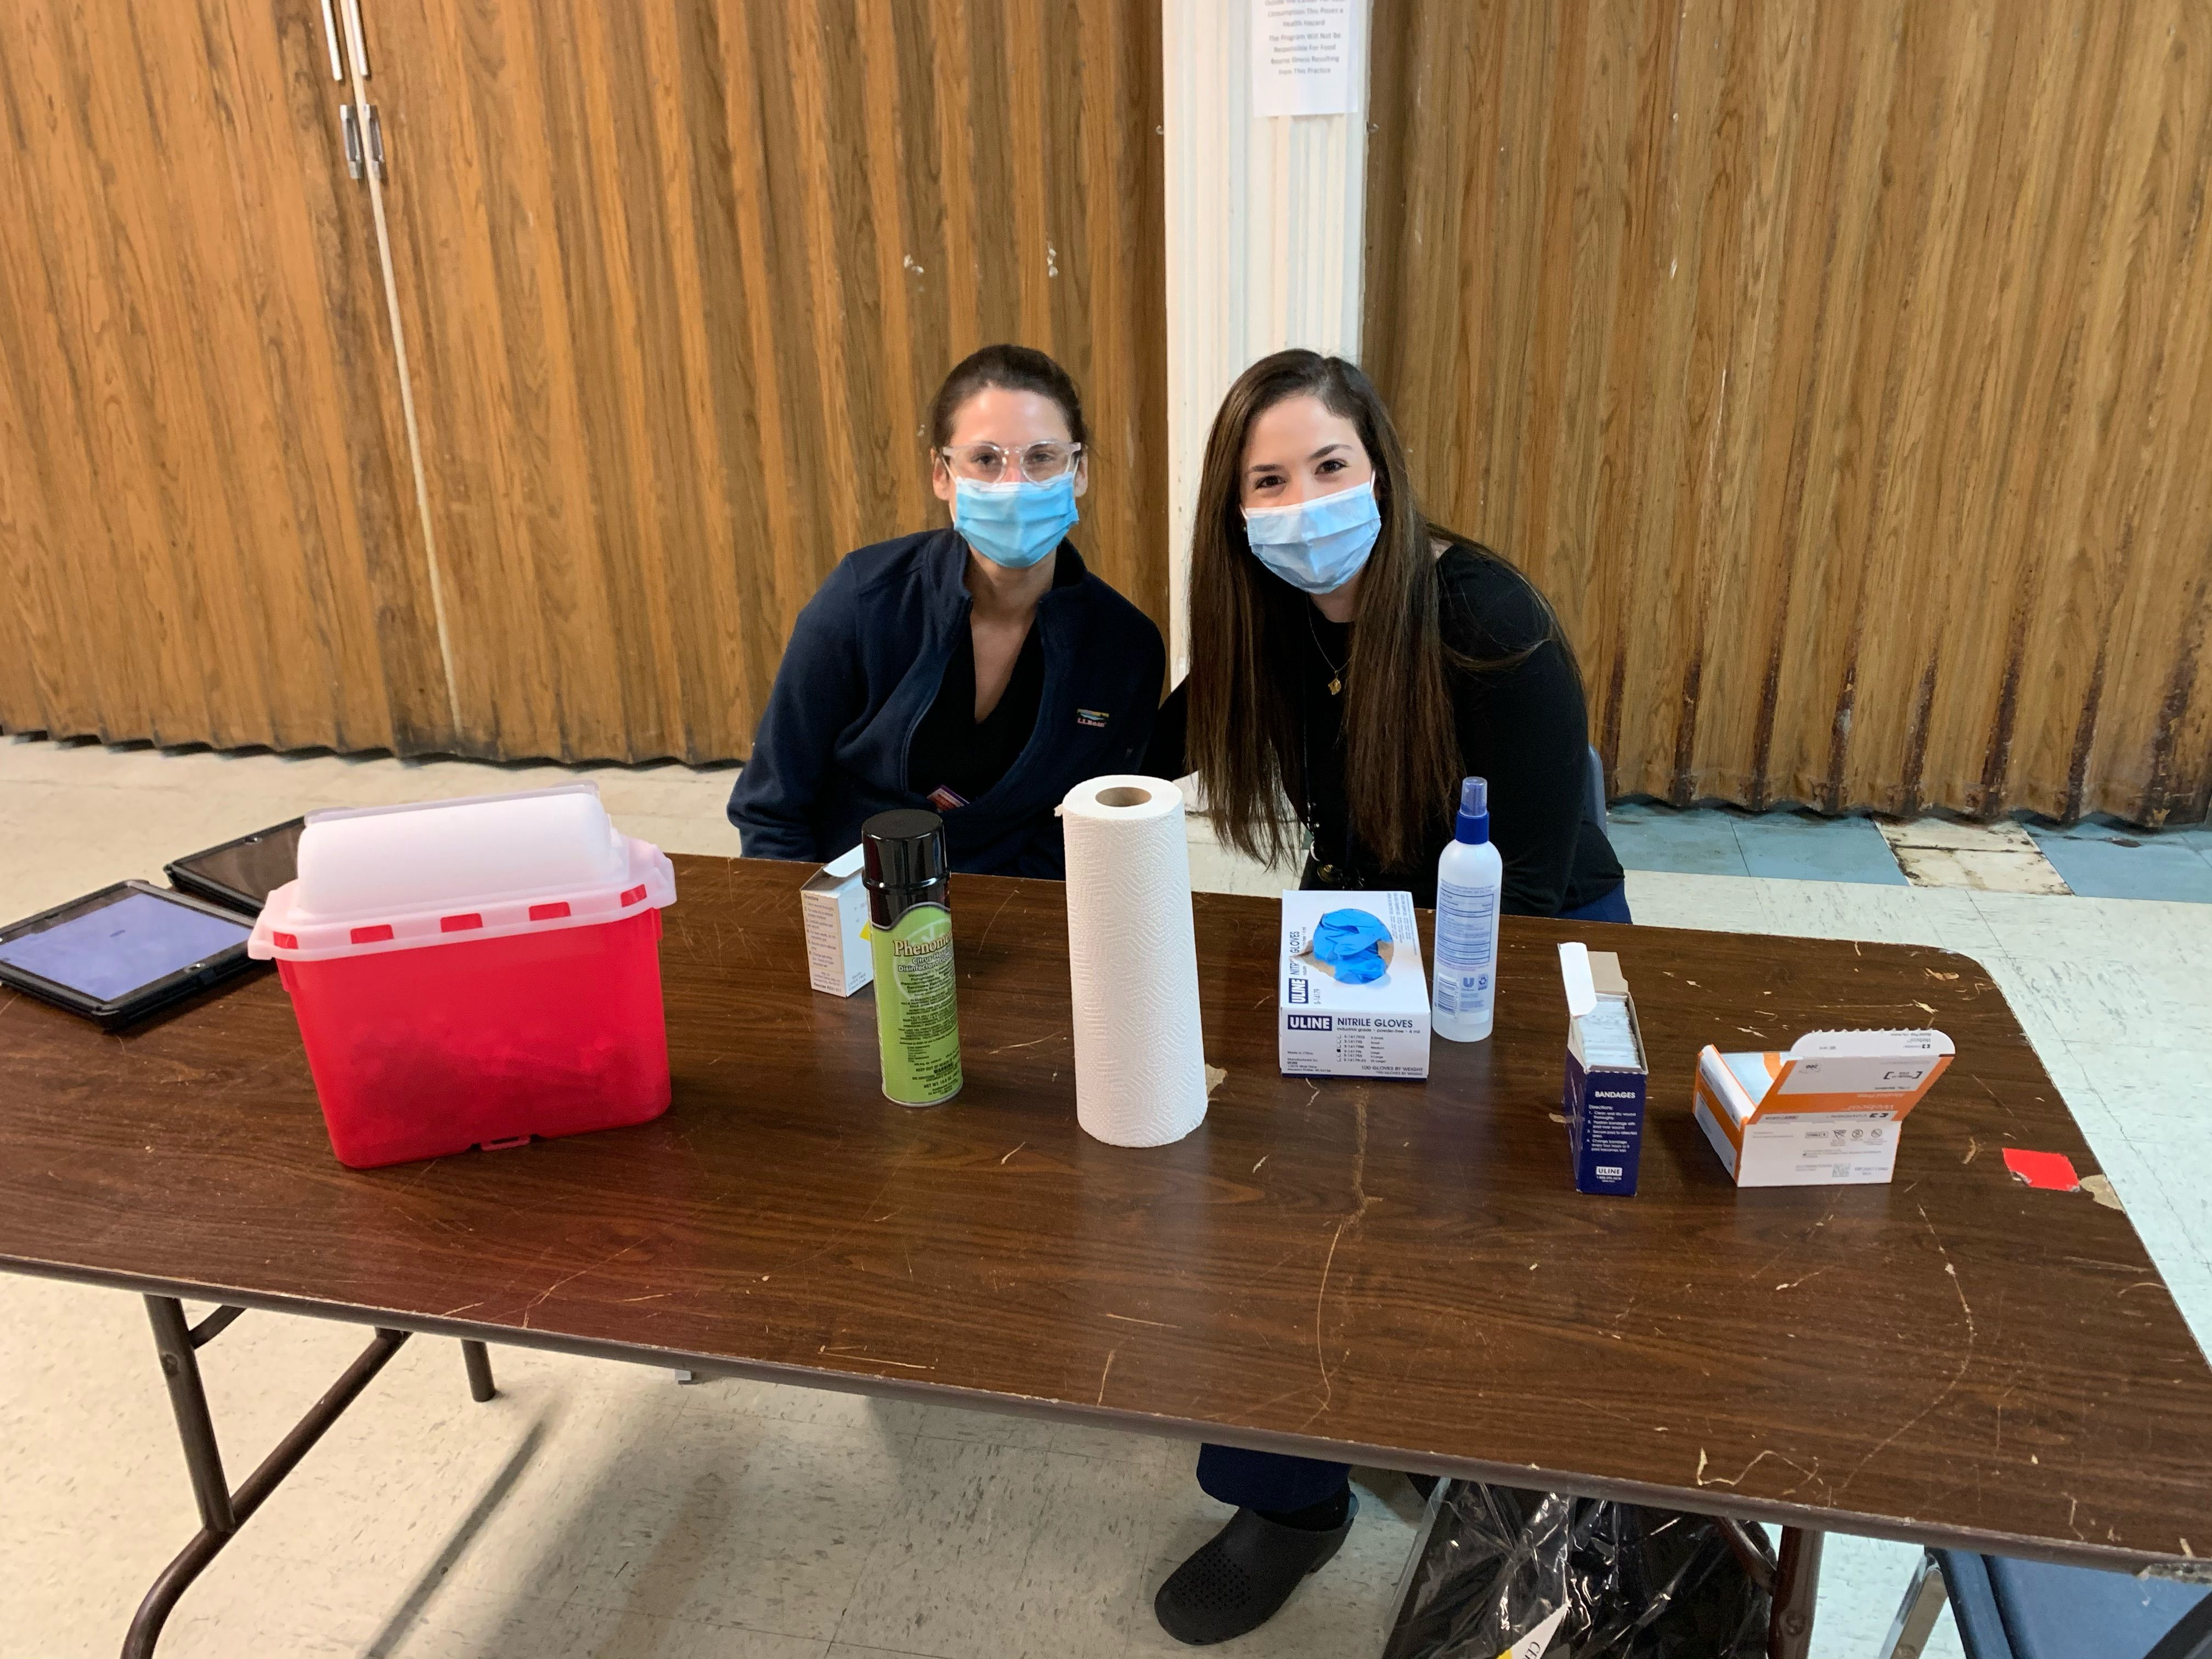 WCM Faculty and Fellows provide vaccines